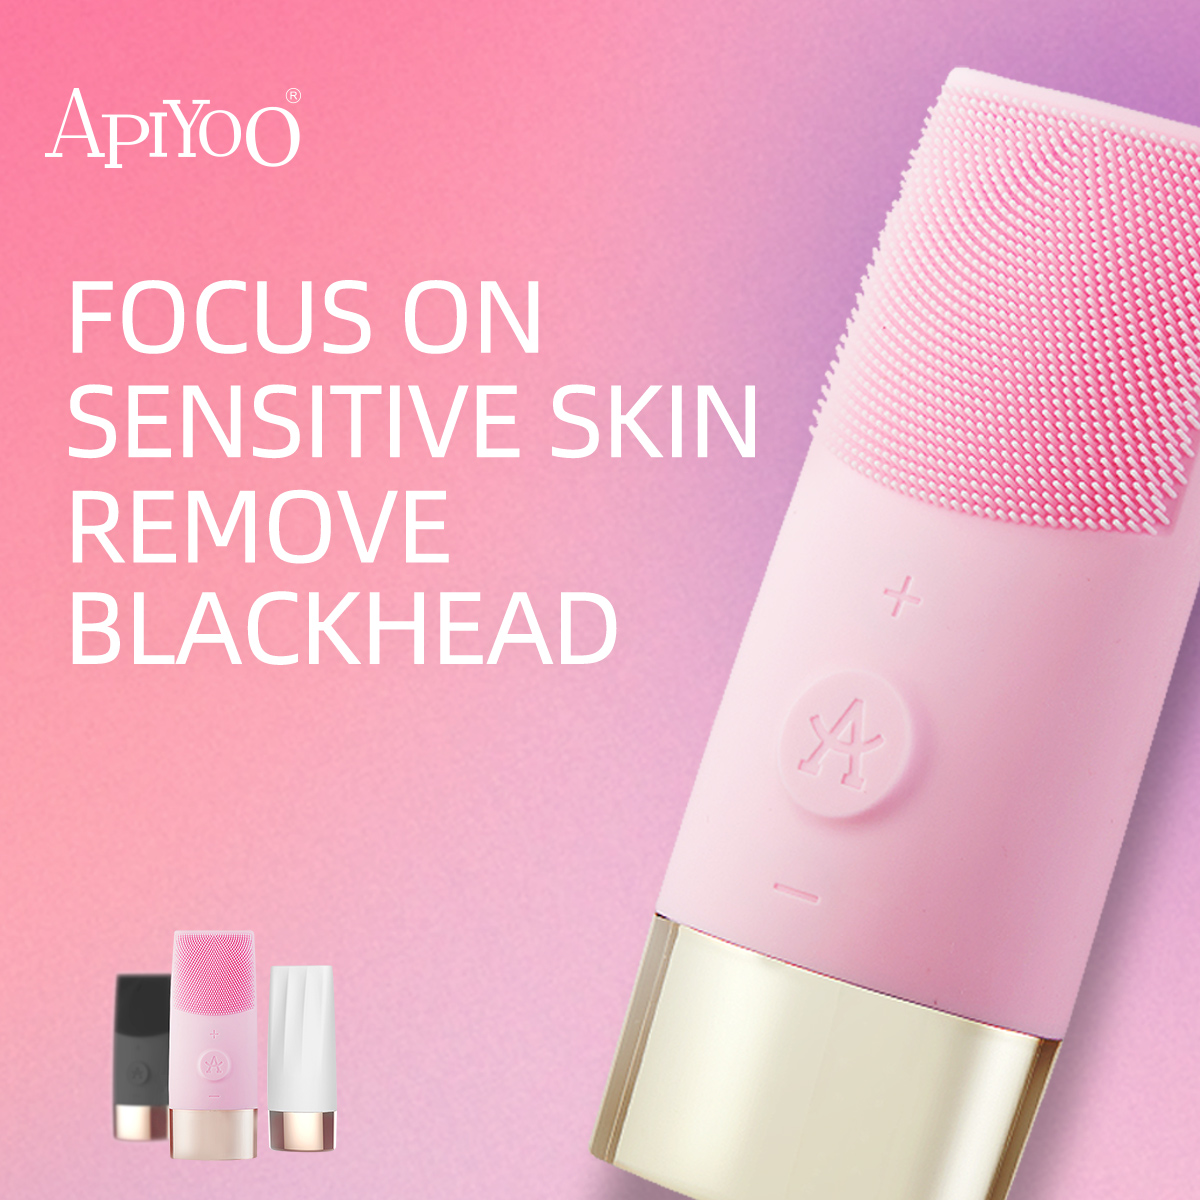 Apiyoo Sonic Facial Cleansing Brush, D7 Rechargeable Silicone Facial Cleanser, IPX7 Waterproof With 10 Speeds For All Skin Types